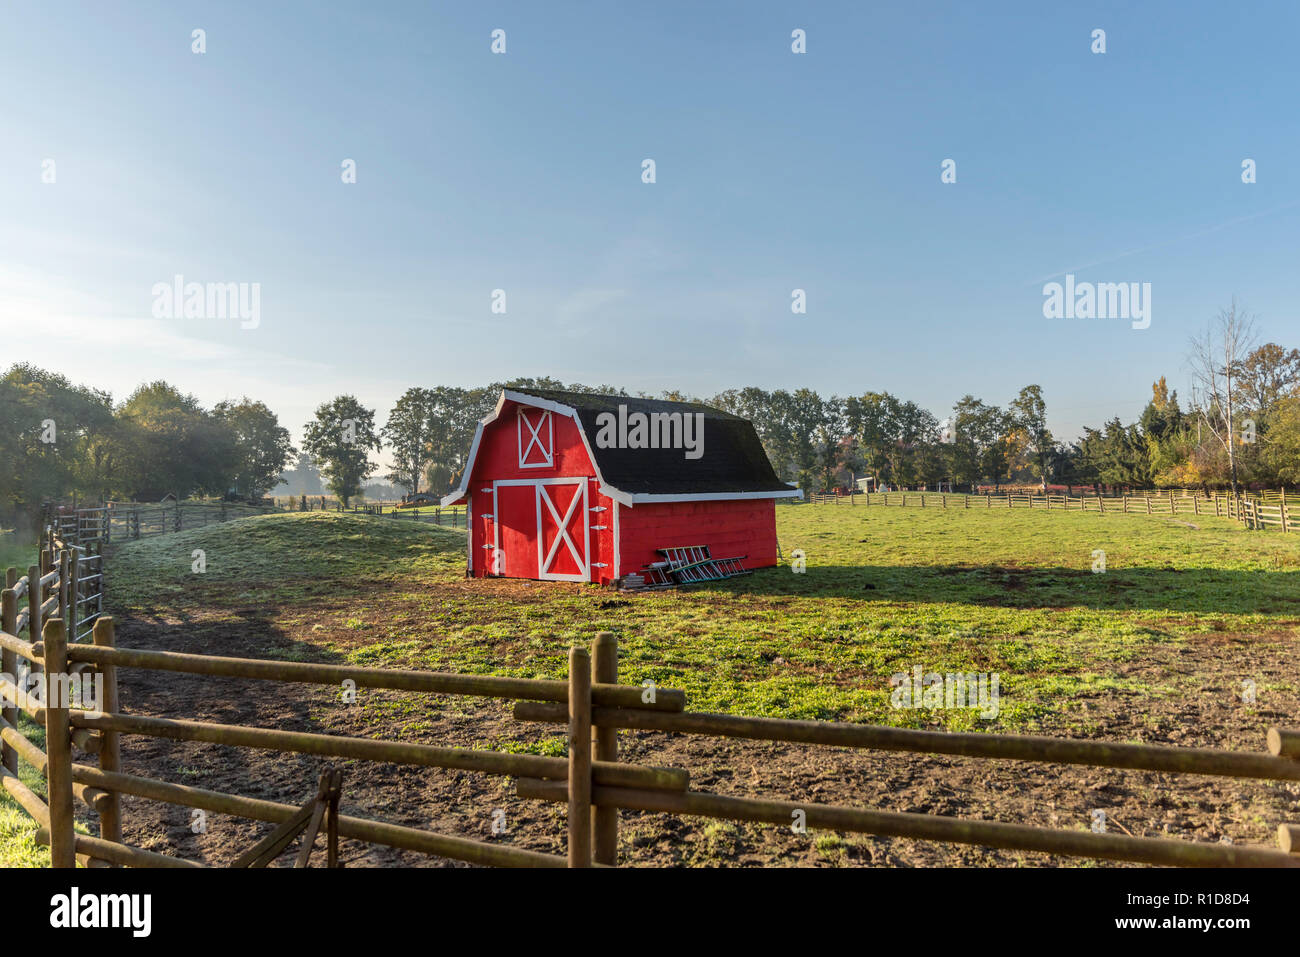 Red wooden barn on a farm, fence made of logs. Blue sky and forest with trees in the background. - Stock Image